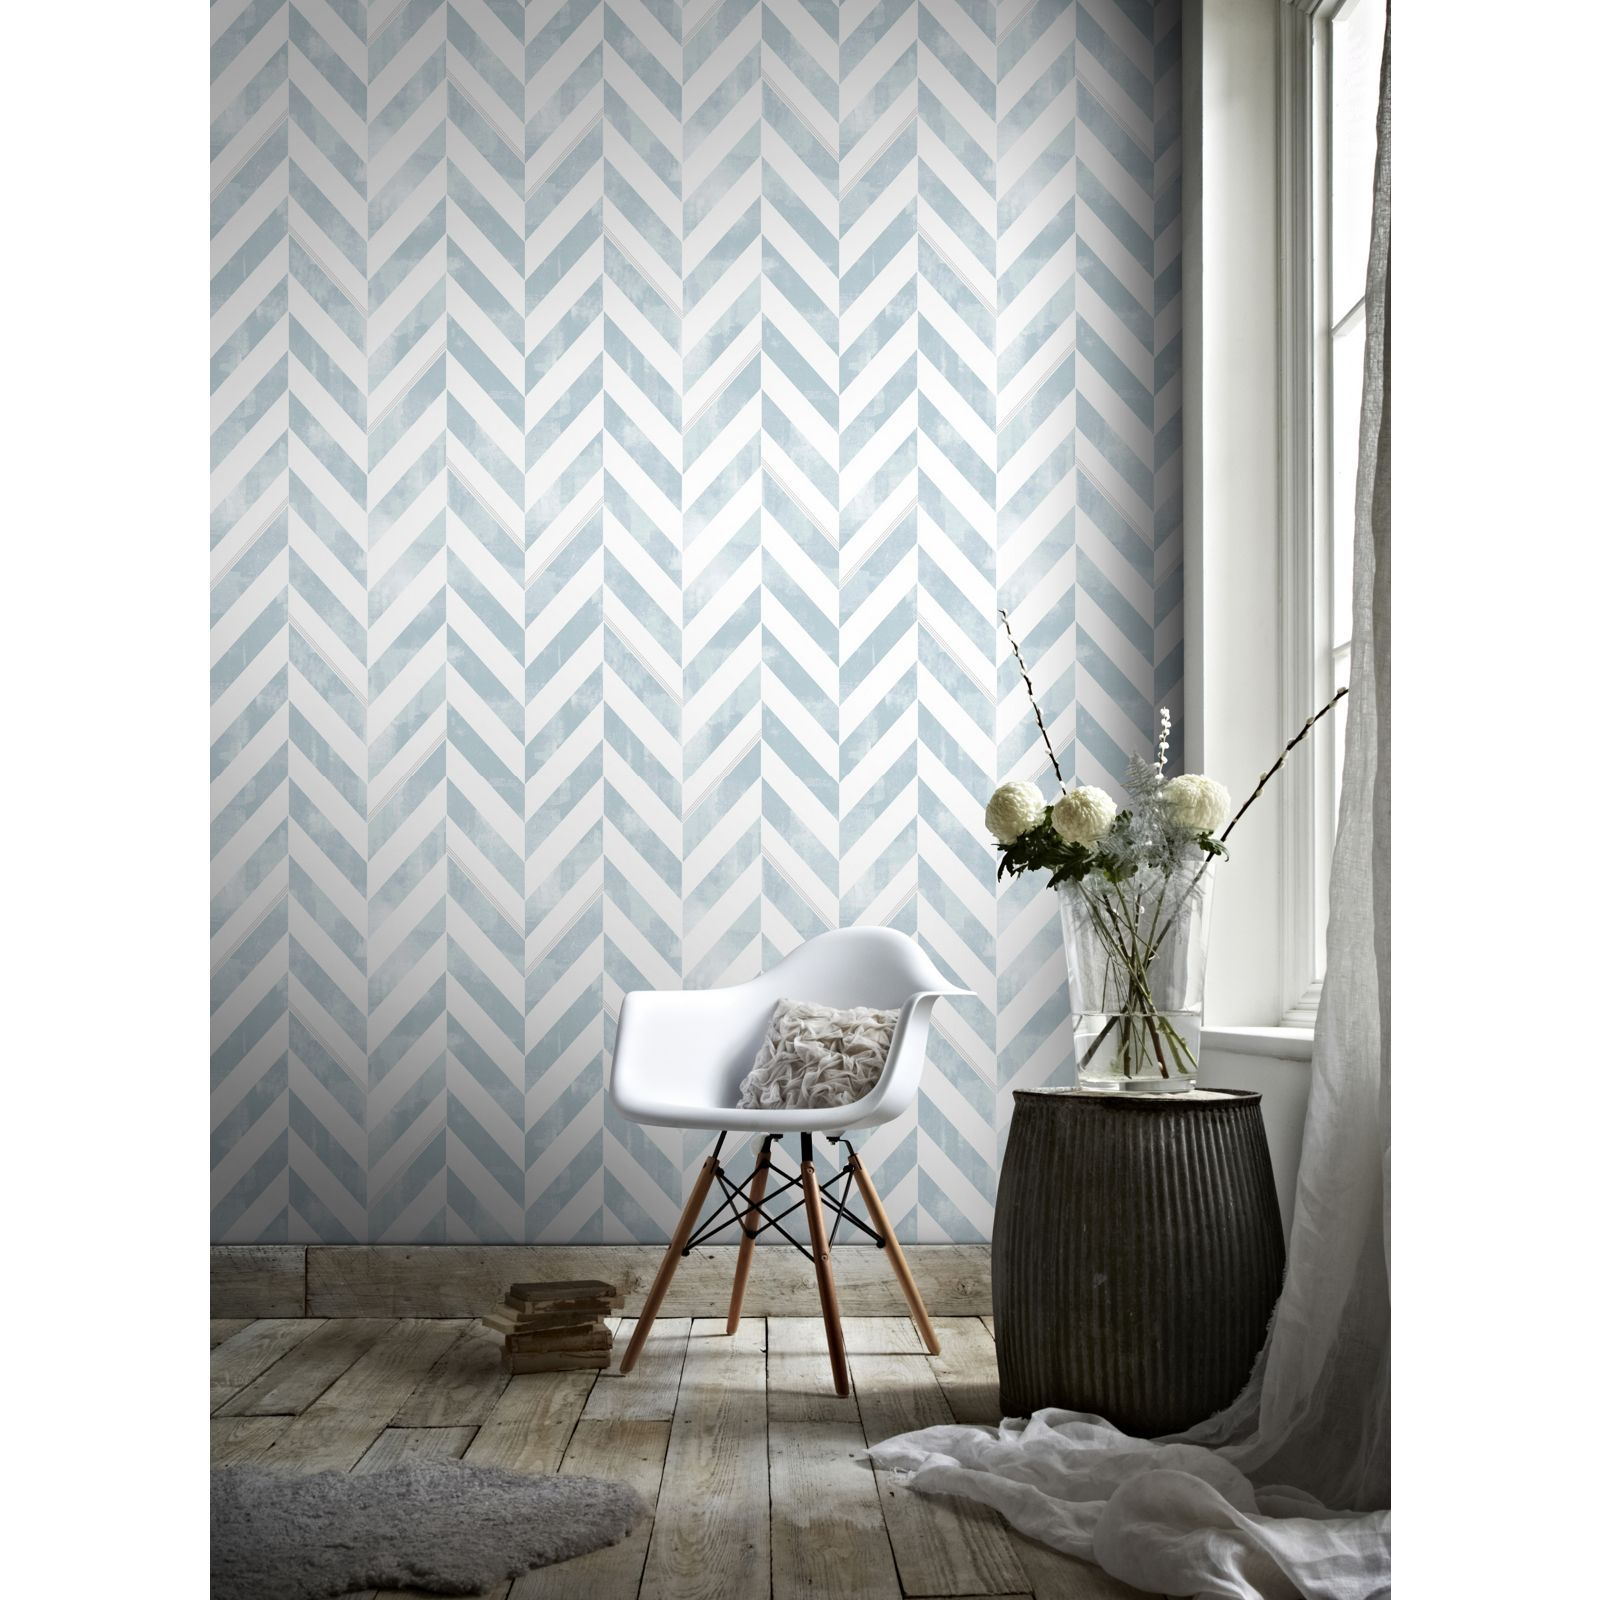 Superfresco Easy Paste the Wall Inspire Mink Wallpaper in